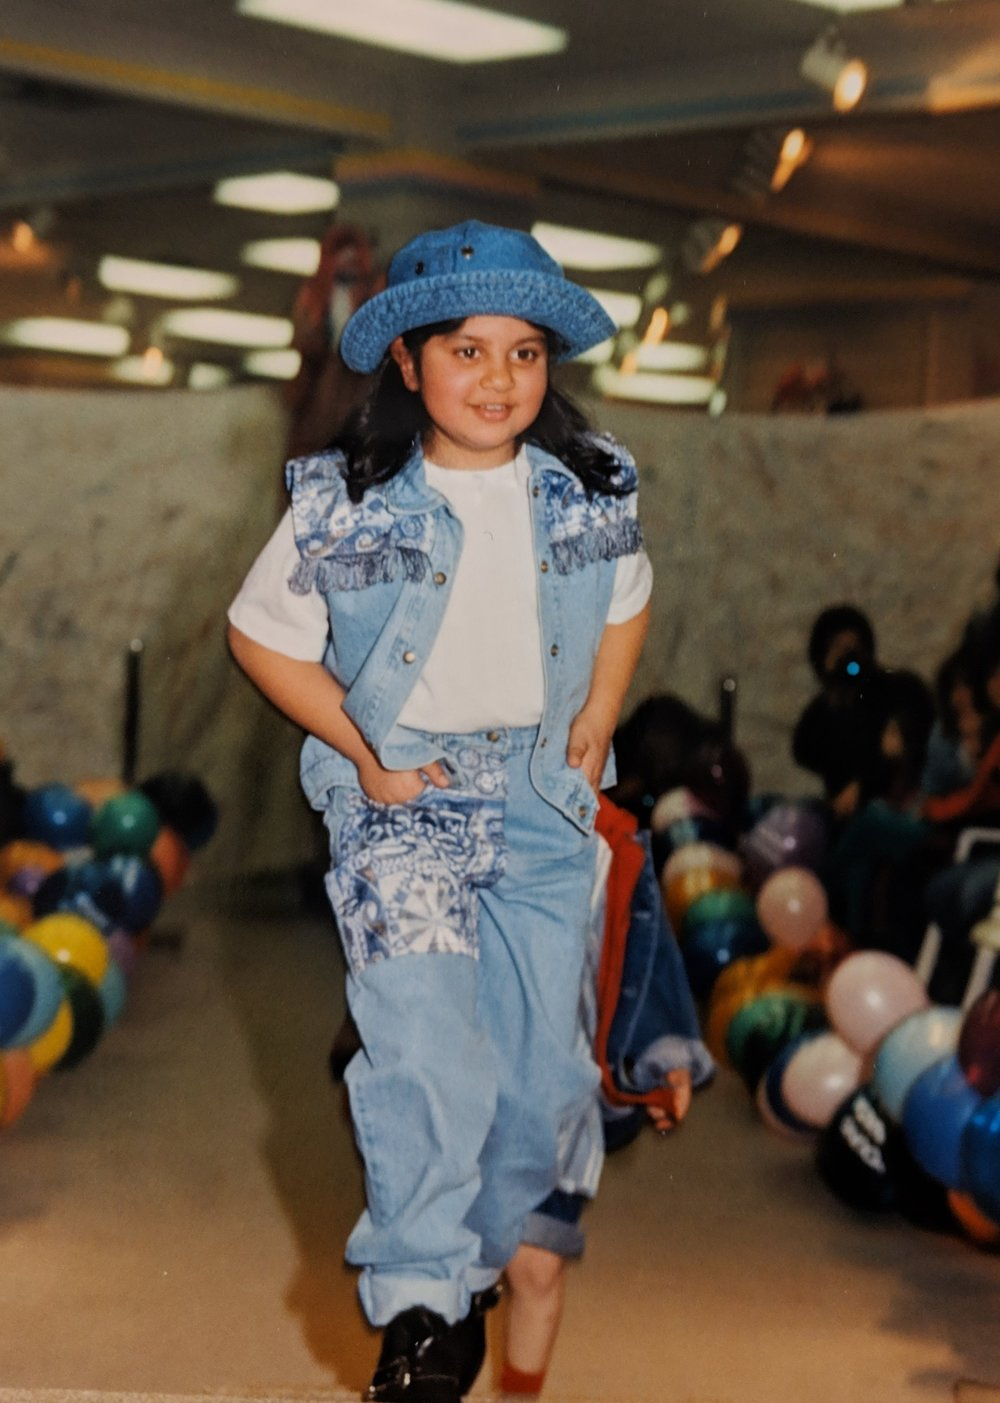 Me at about 8 years old, walking in a mall fashion show. I wanted to take home this entire outfit. I really loved denim.